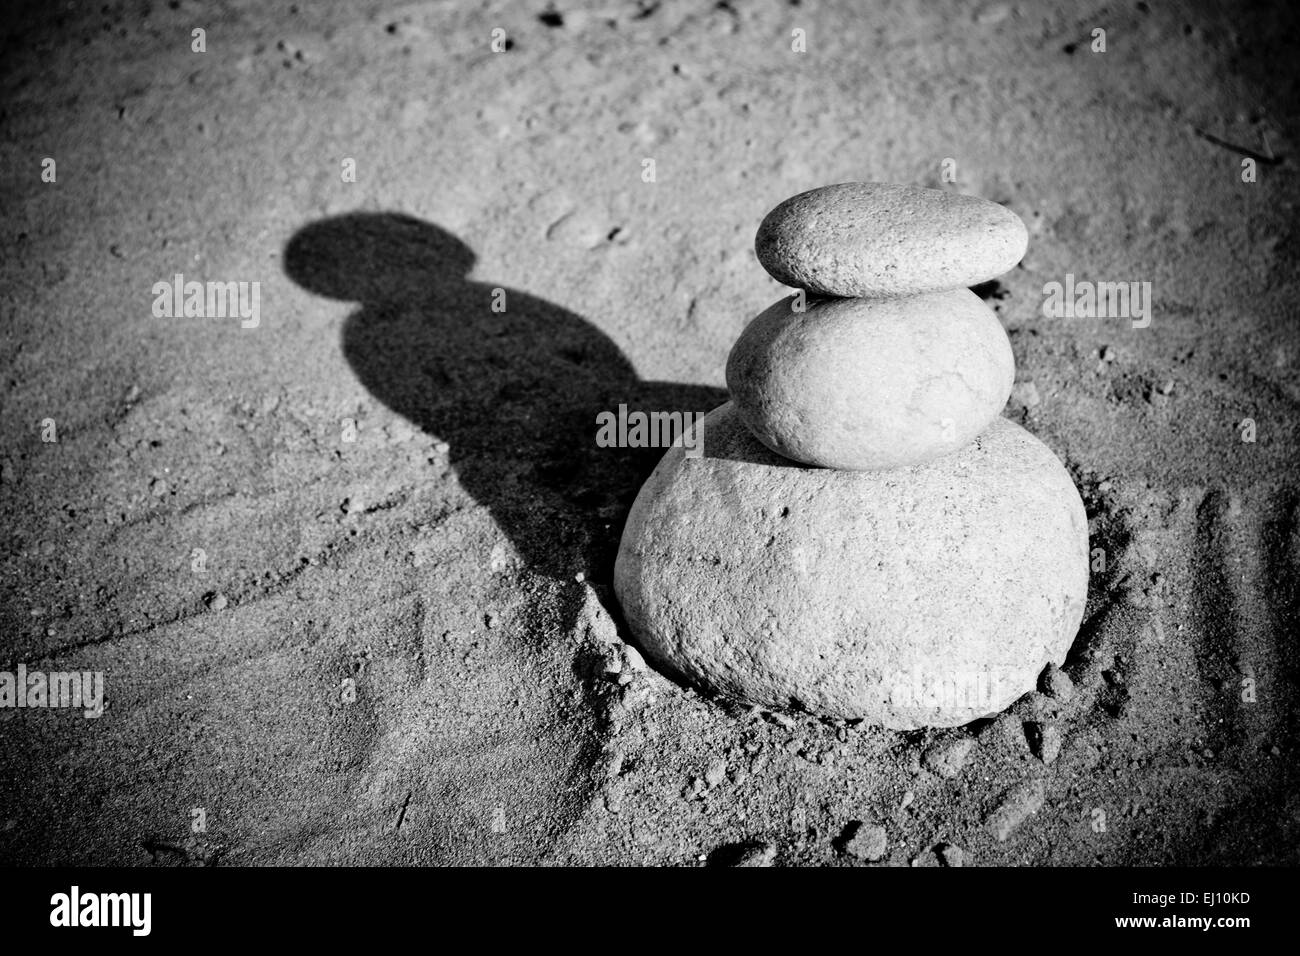 Stack of pebbles - Stock Image